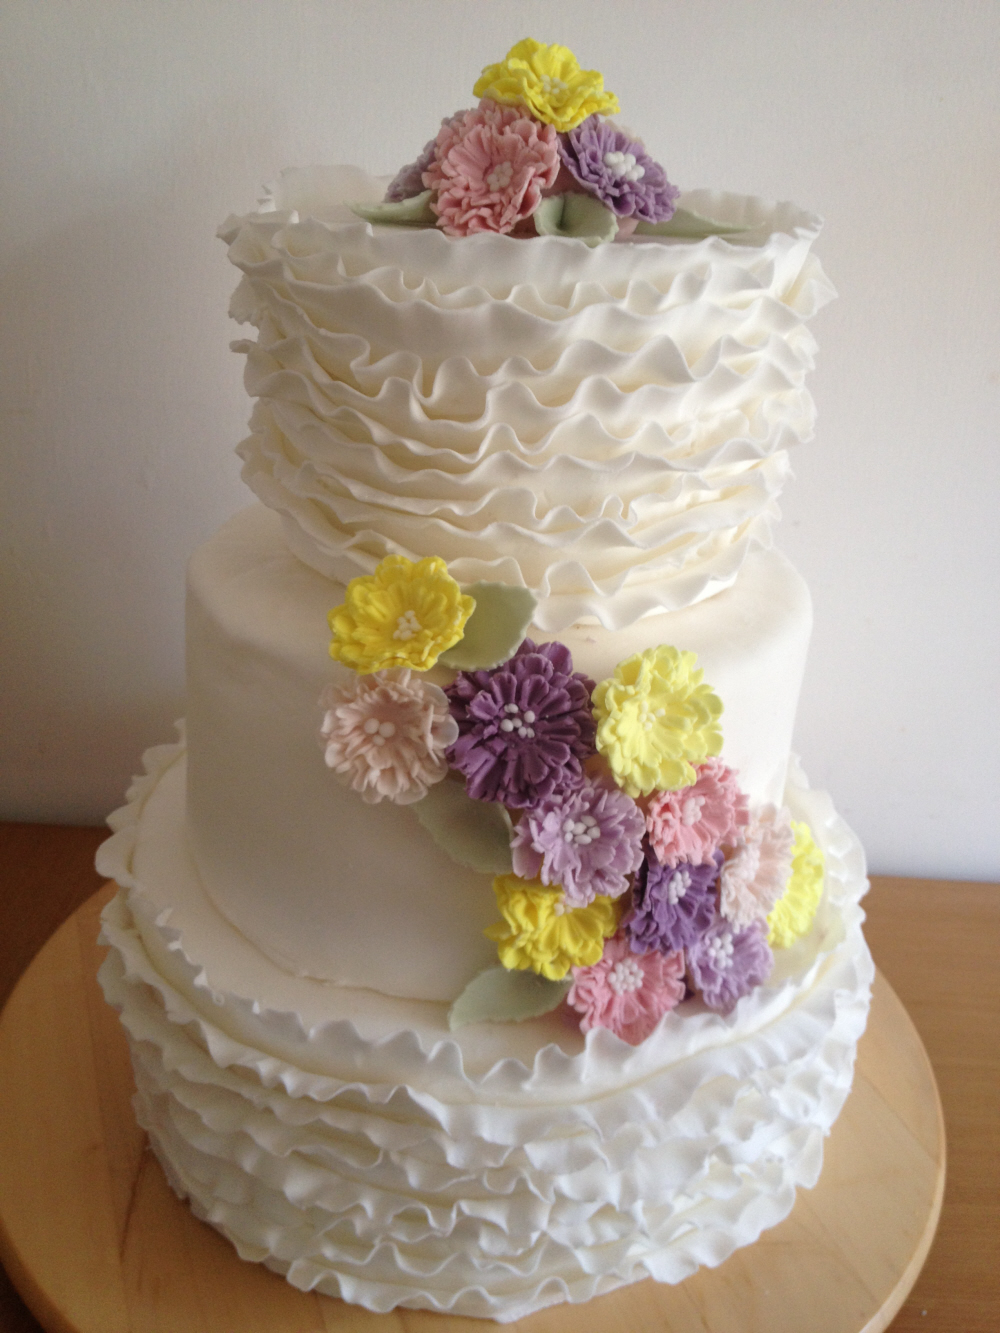 Ruffled 3 tired cake with flowers